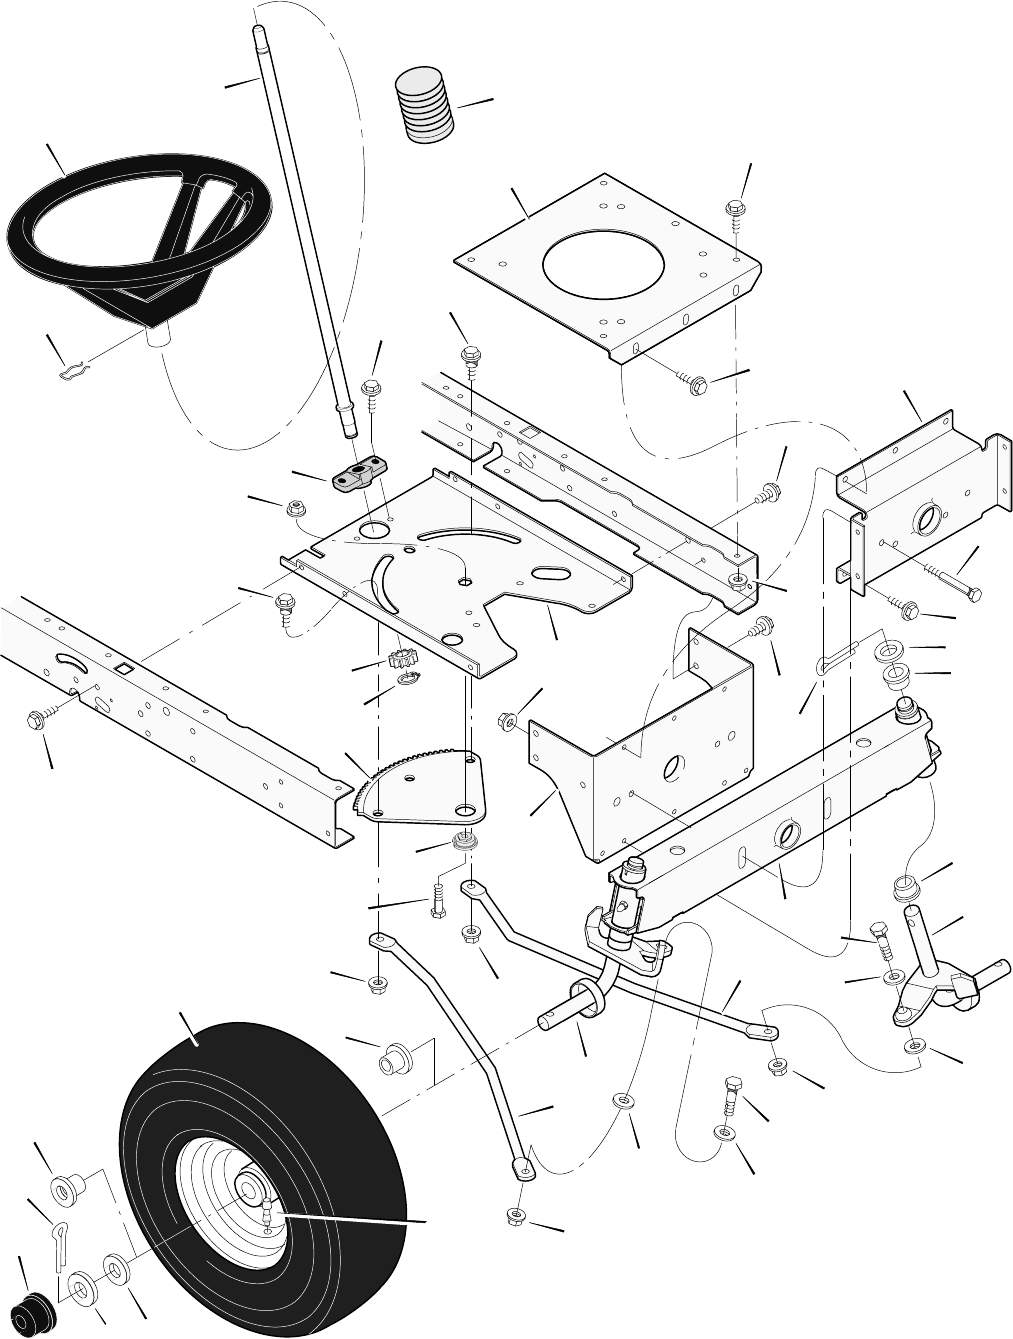 Page 42 of Murray Lawn Mower 425303x92B User Guide